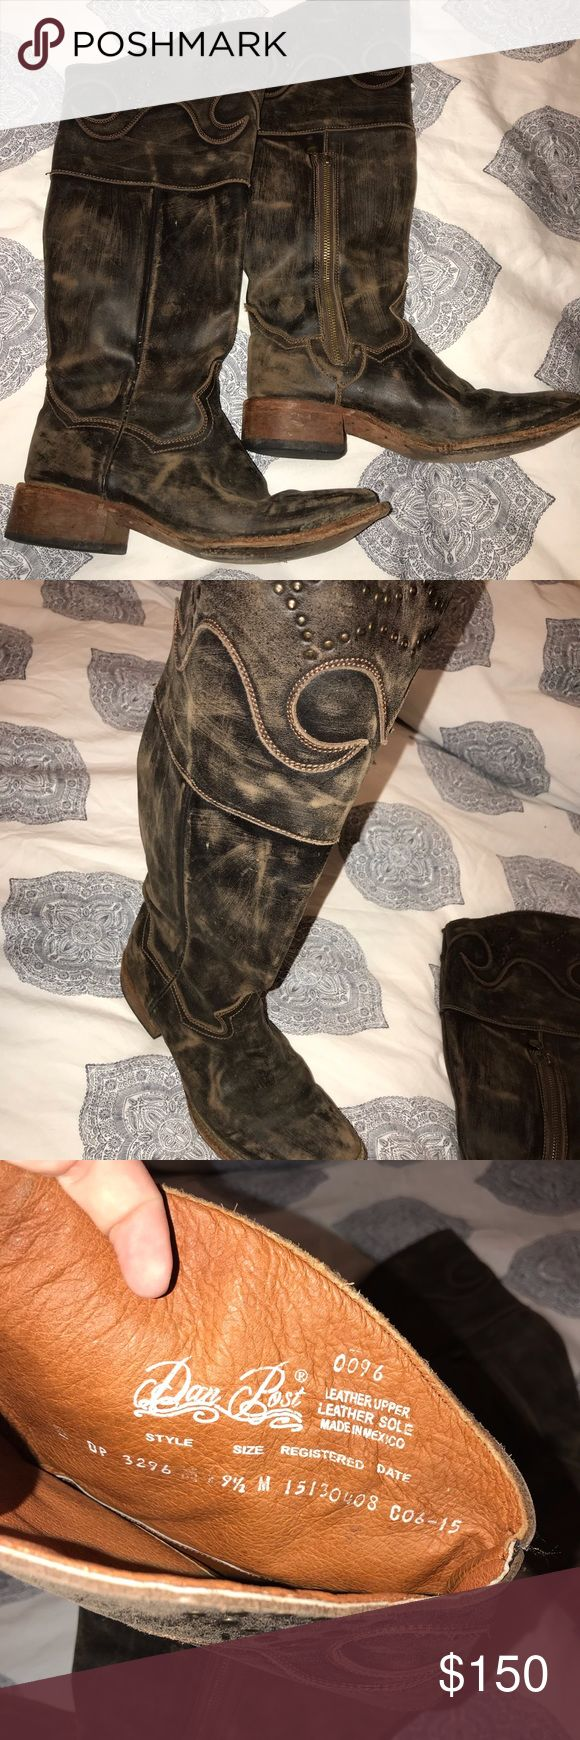 Beautiful dan post knee high western boot Beautiful rustic knee high western fas…